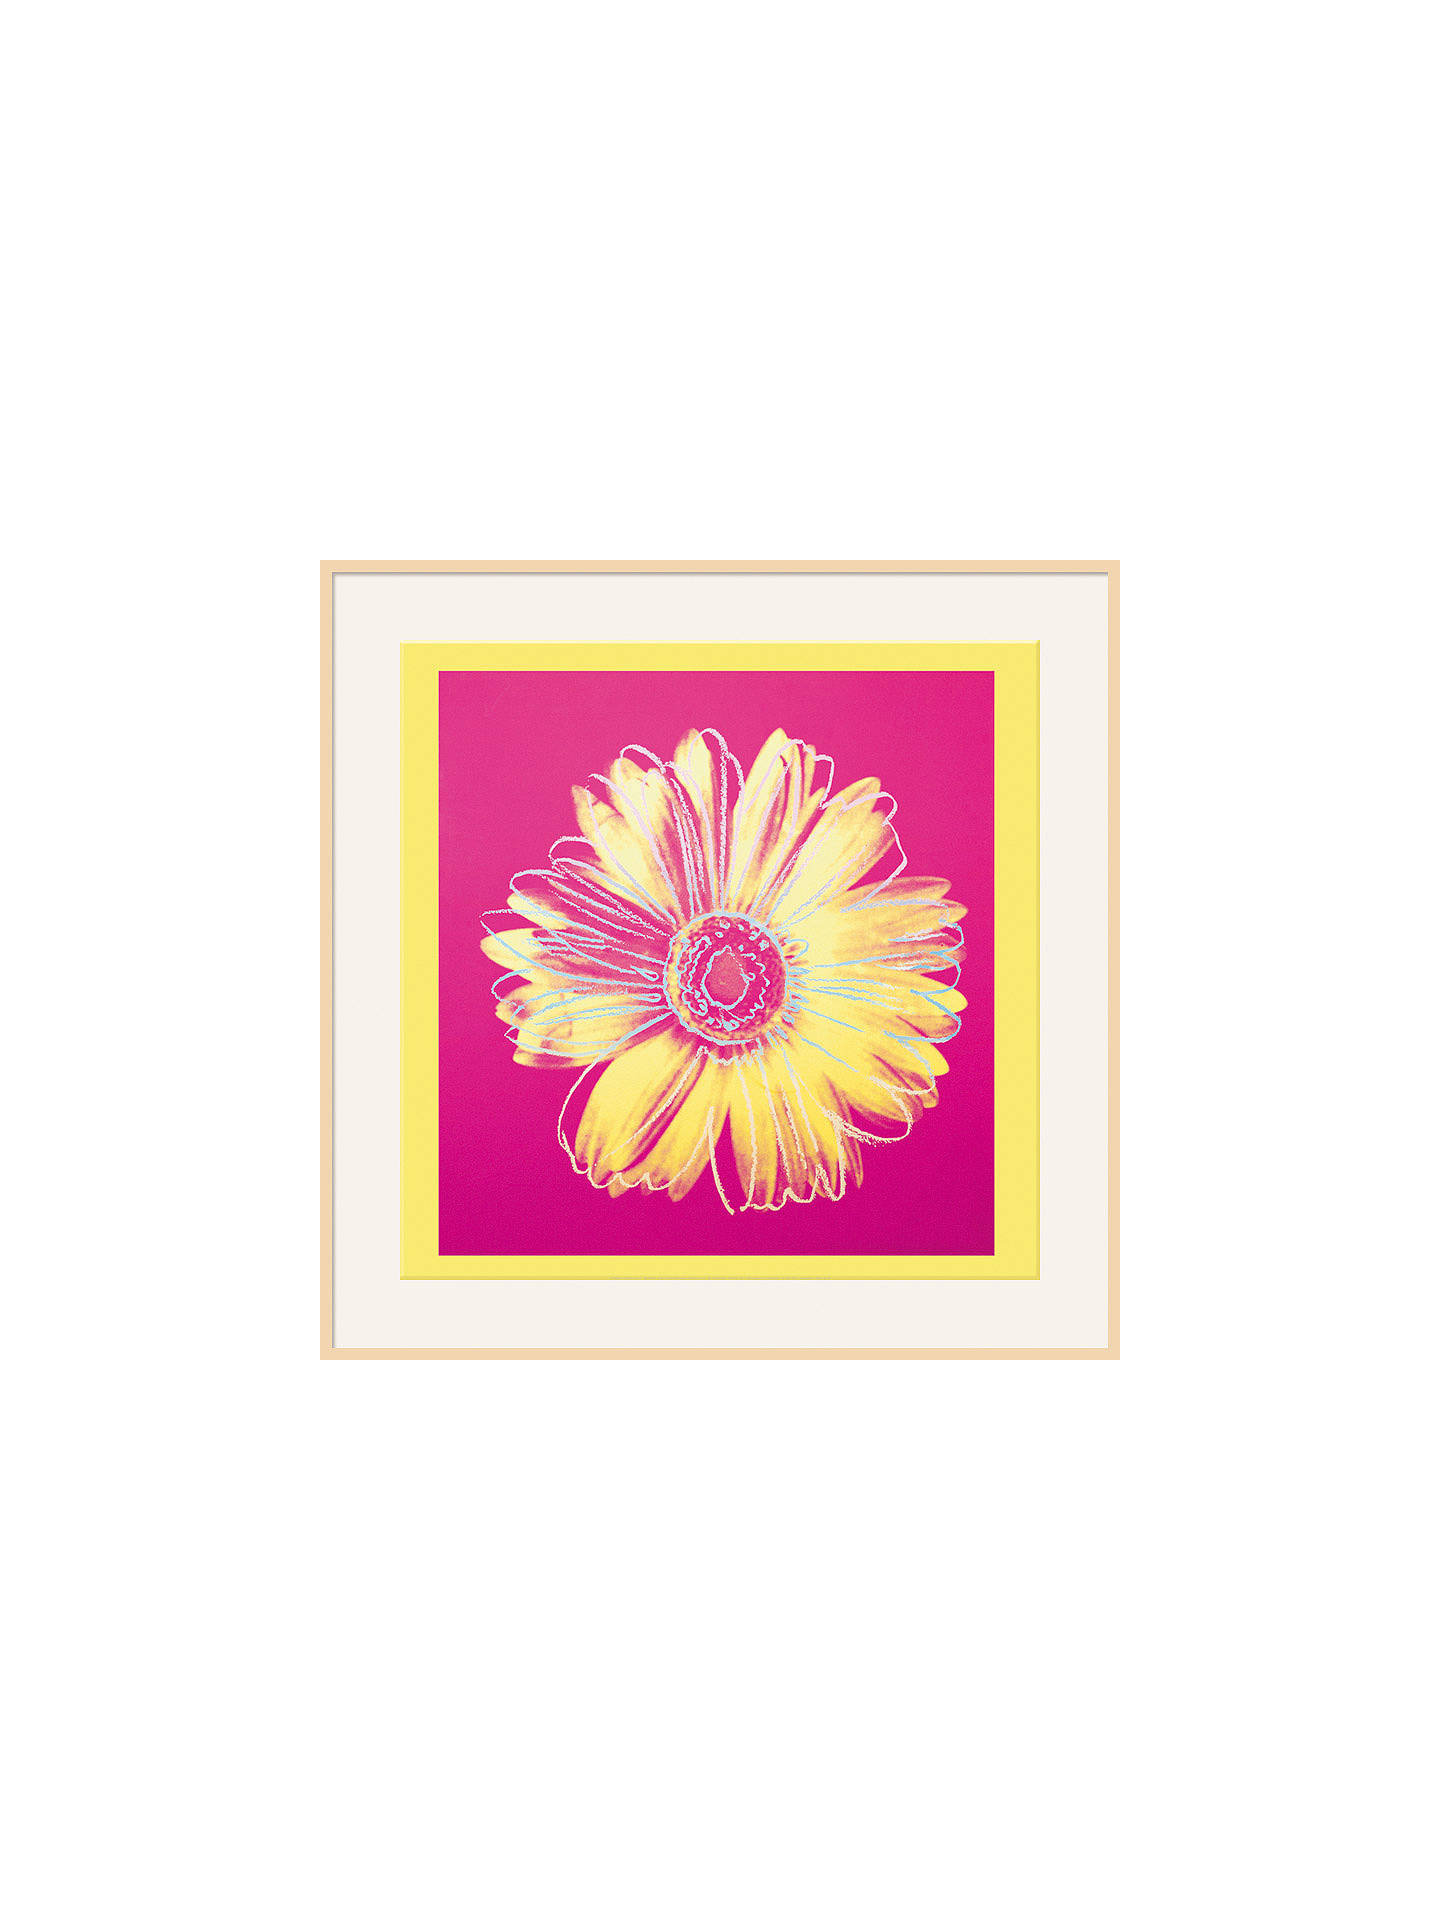 Buy Warhol - Daisy 1982, Yellow on Pink, Natural Ash Framed Print, 110 x 110cm Online at johnlewis.com